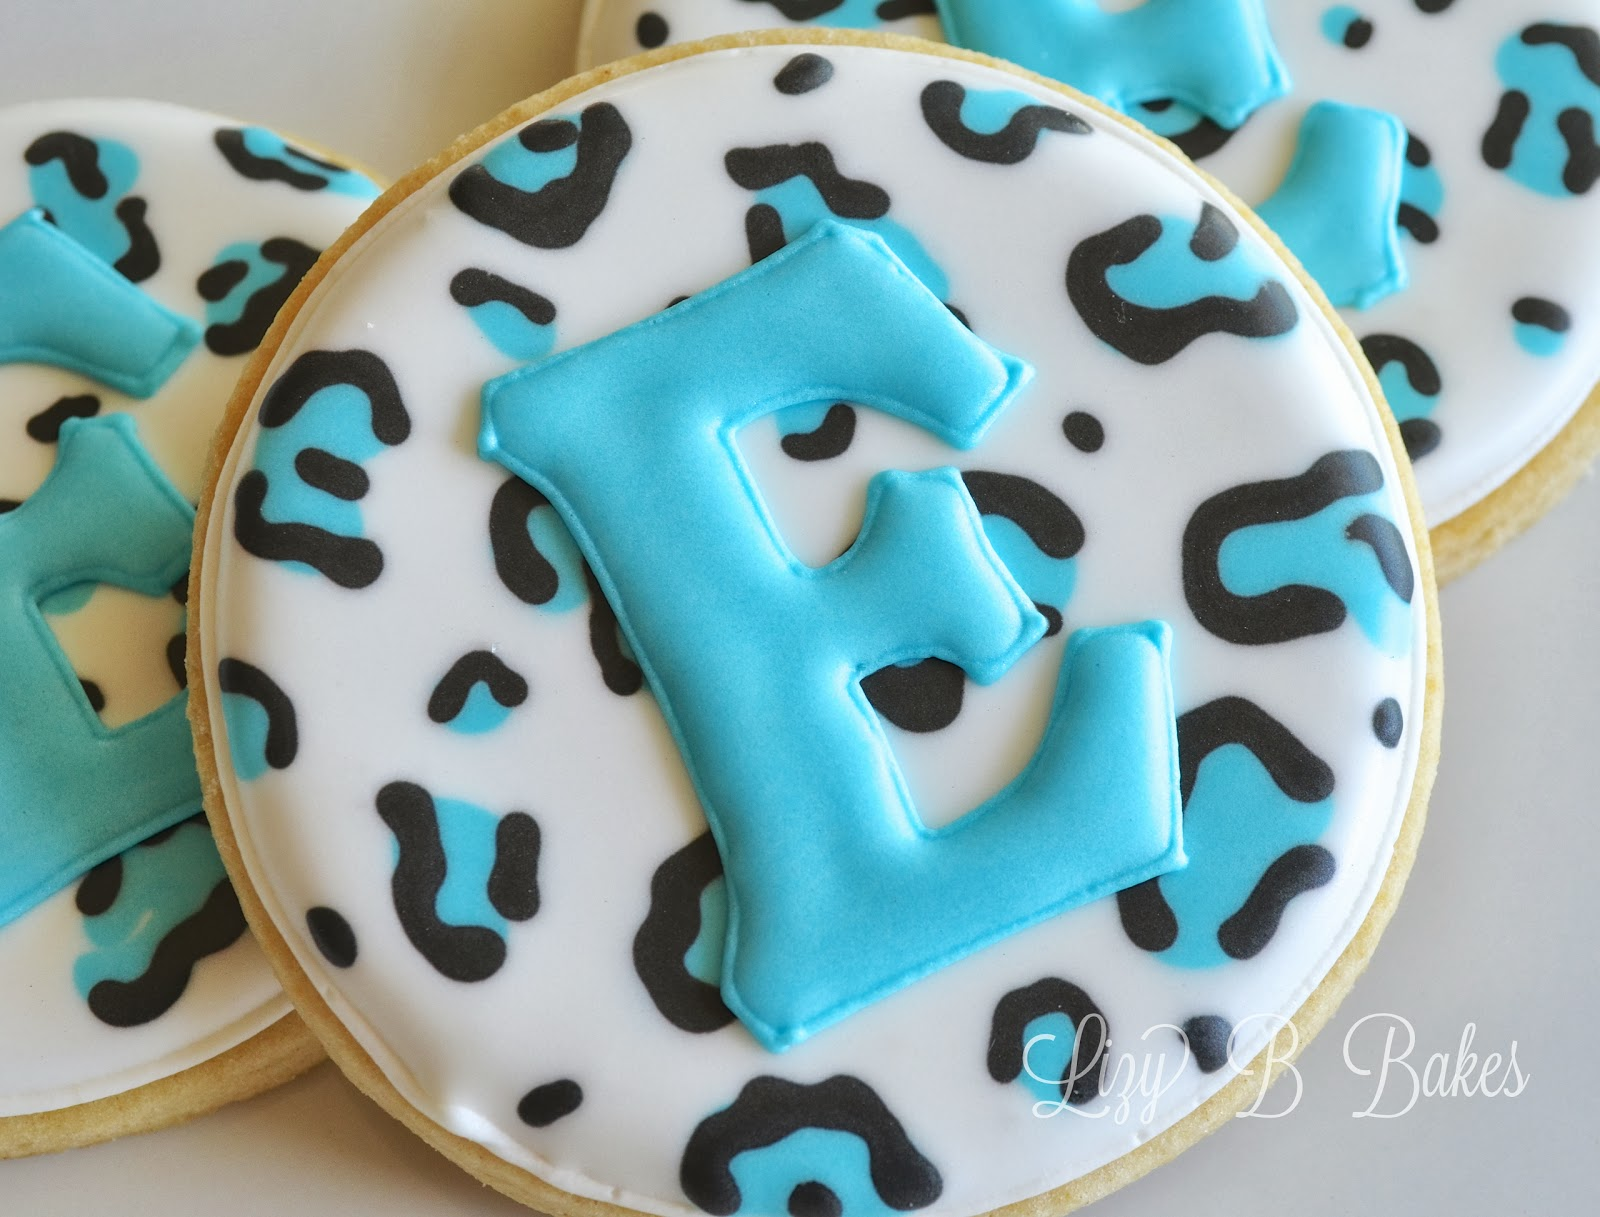 Baby Shower Cookie Images ~ Lizy b jungle safari baby shower cookies